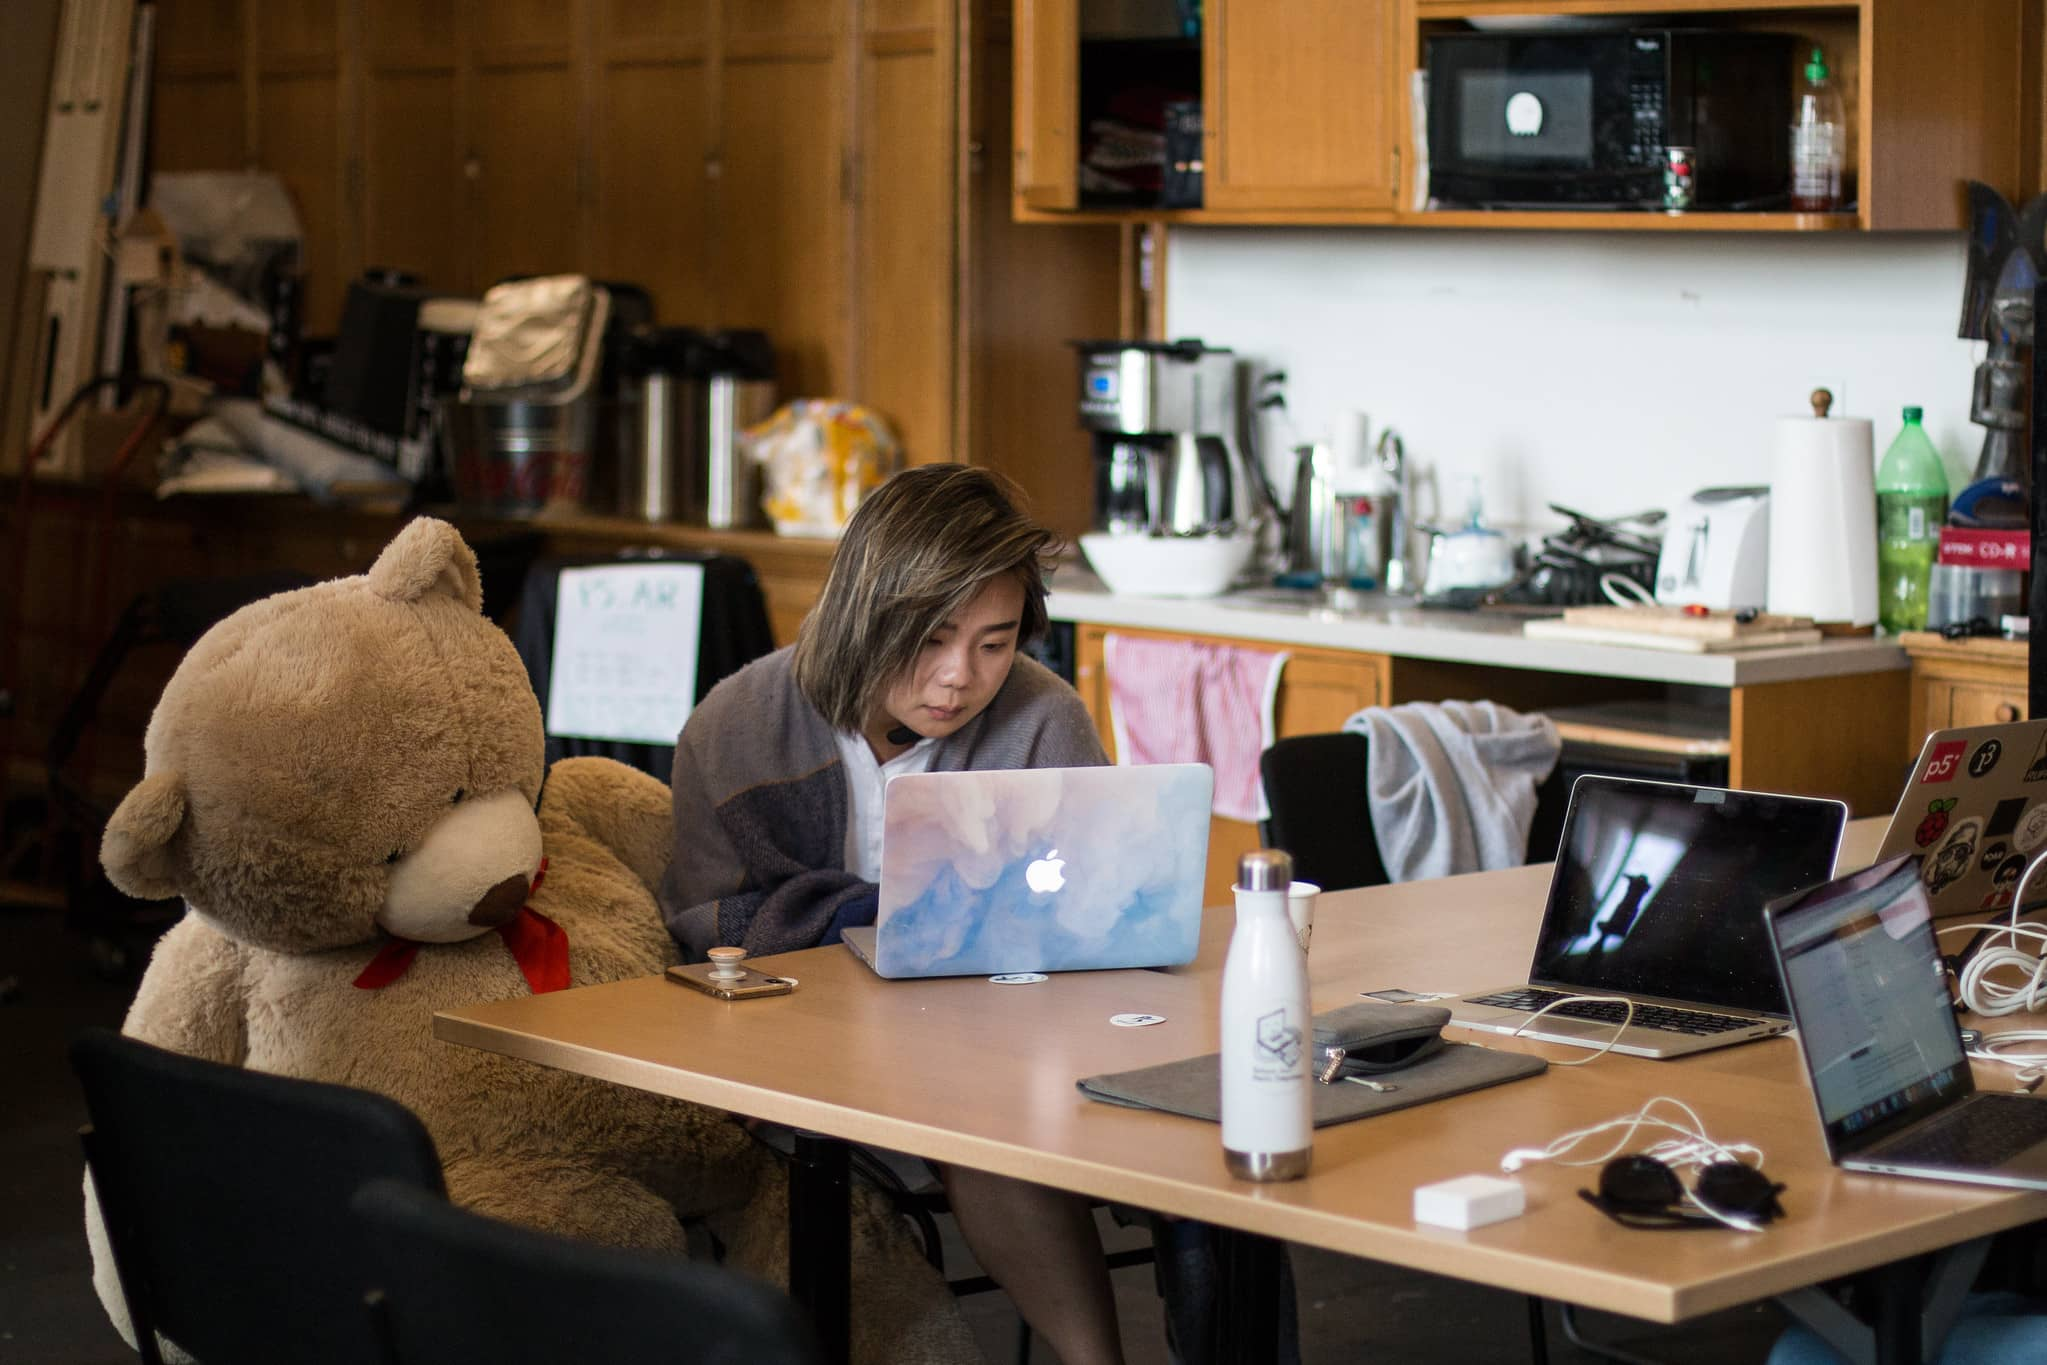 Woman sitting next to a lifesize teddy bear works on her laptop""